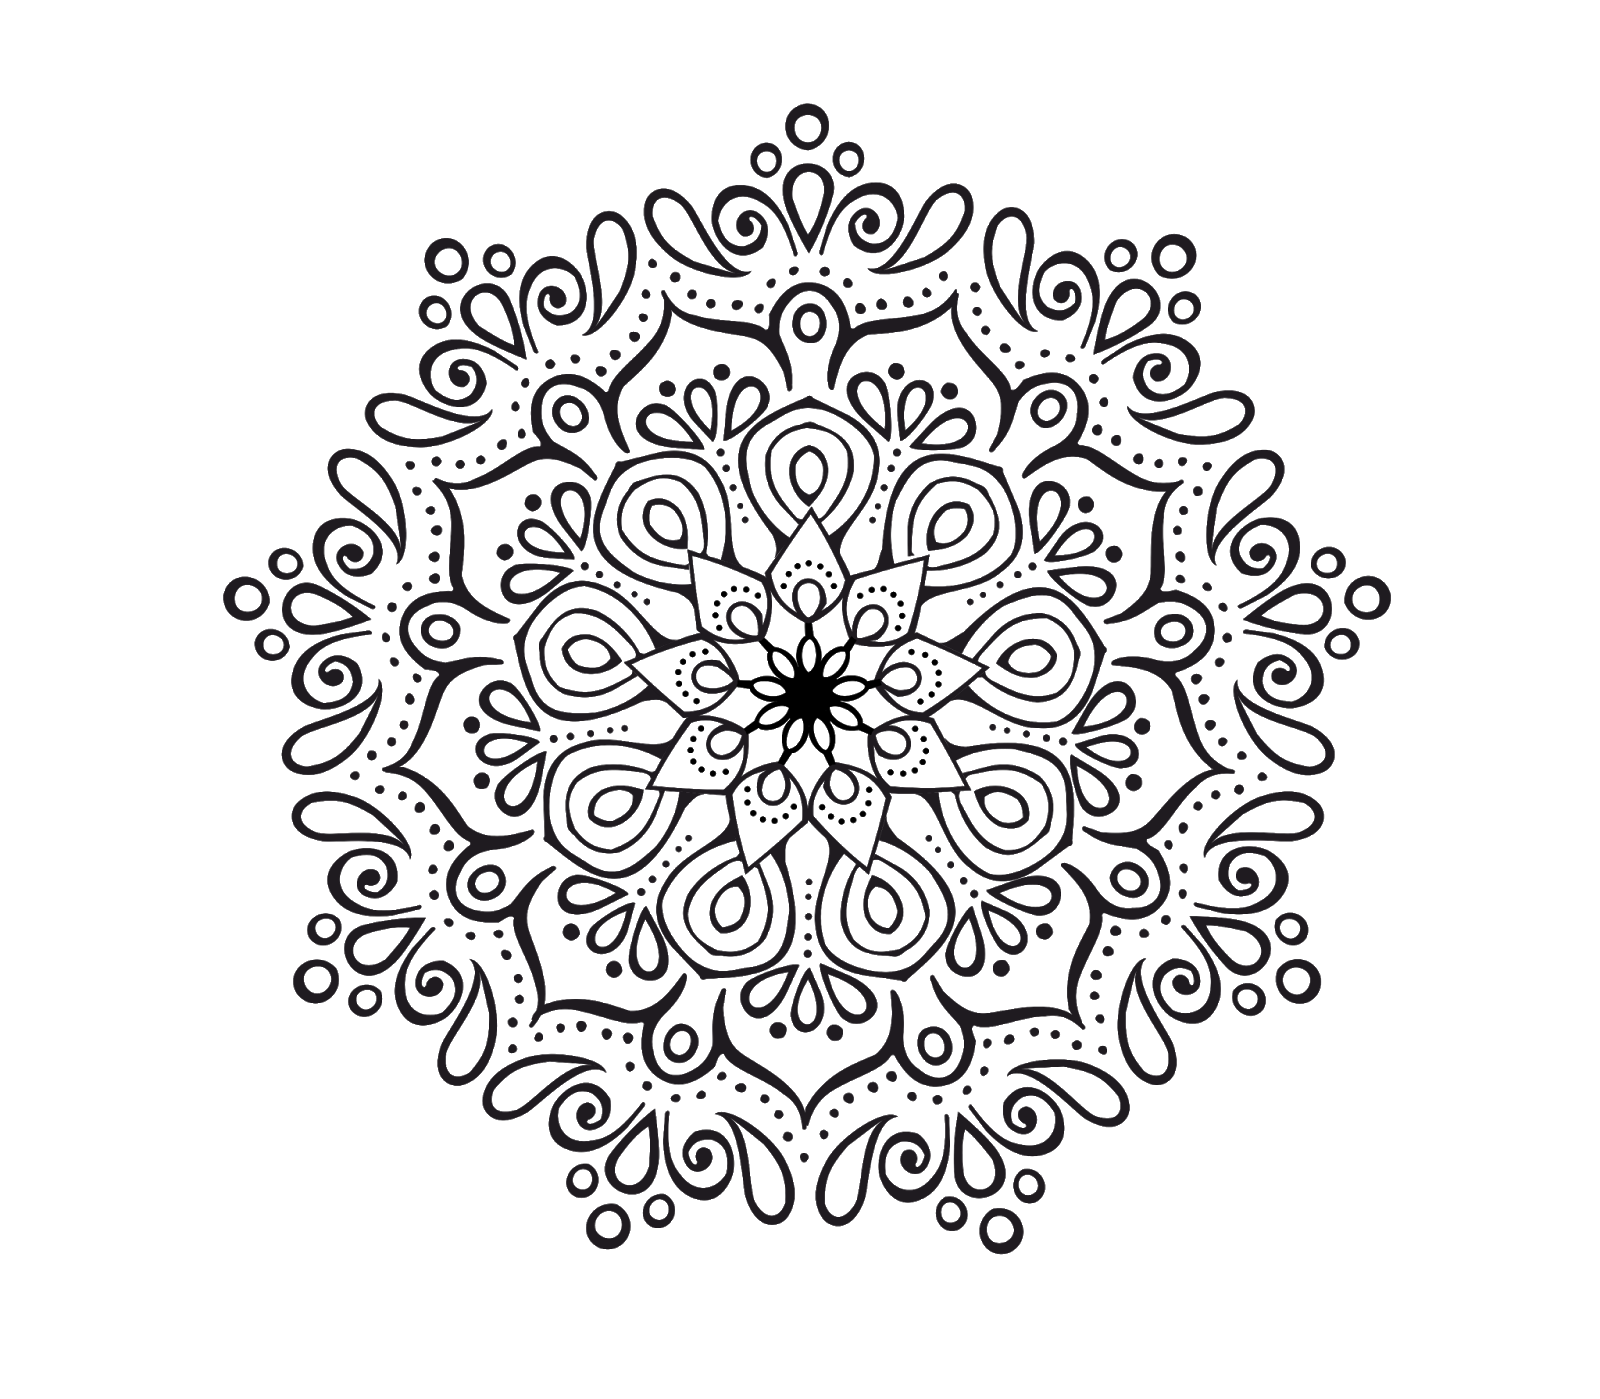 Rk graphic mandal set. Arabesque vector simple design png free